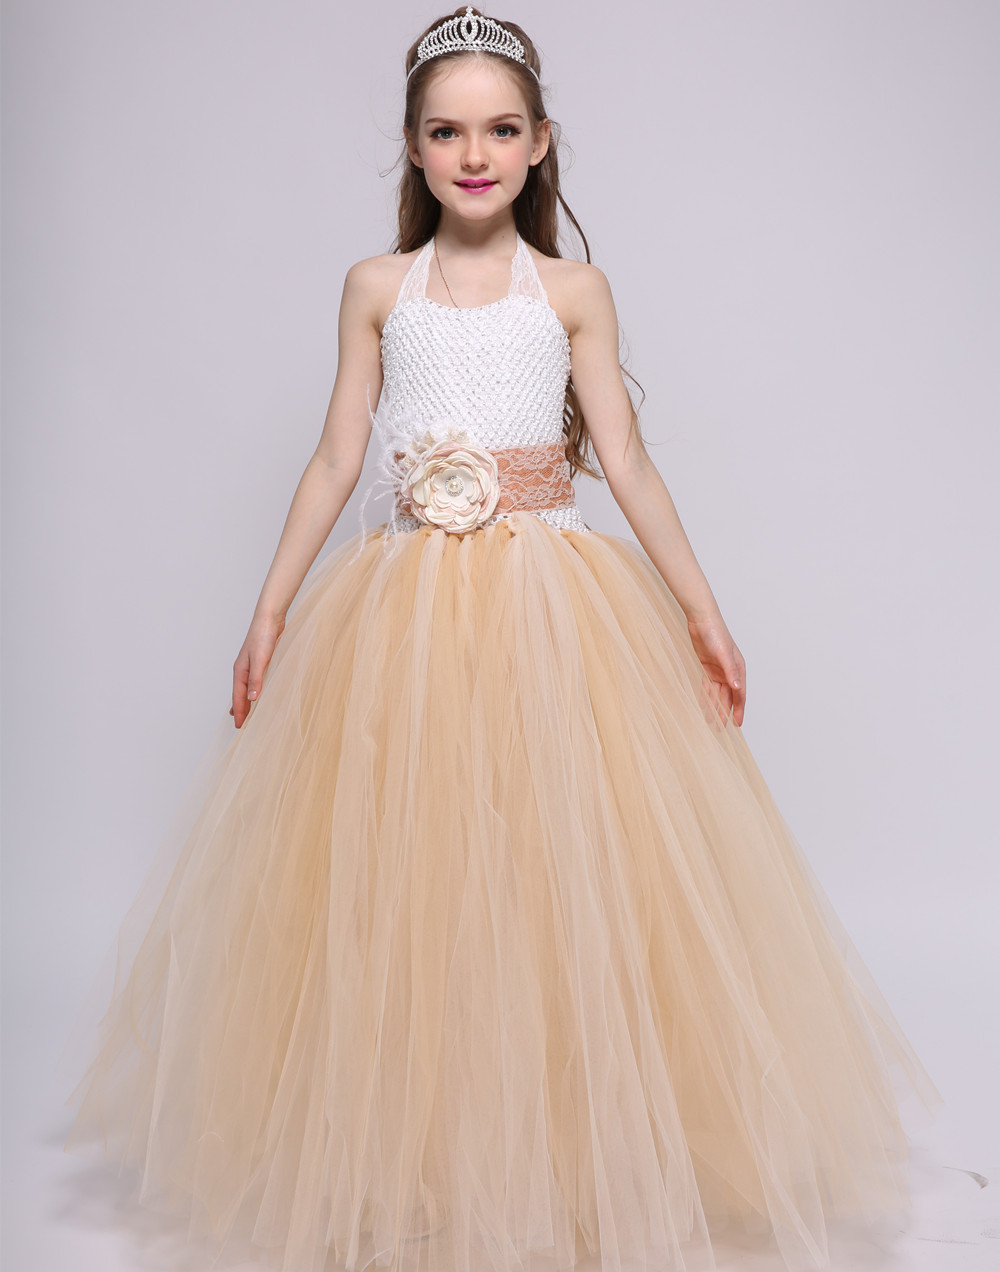 Christmas Dresses for Girs Chic Flower Girl Dress Kids Baby Tutu Princess Dress Carnival Party Wedding Pageant Tulle Tutu Dress